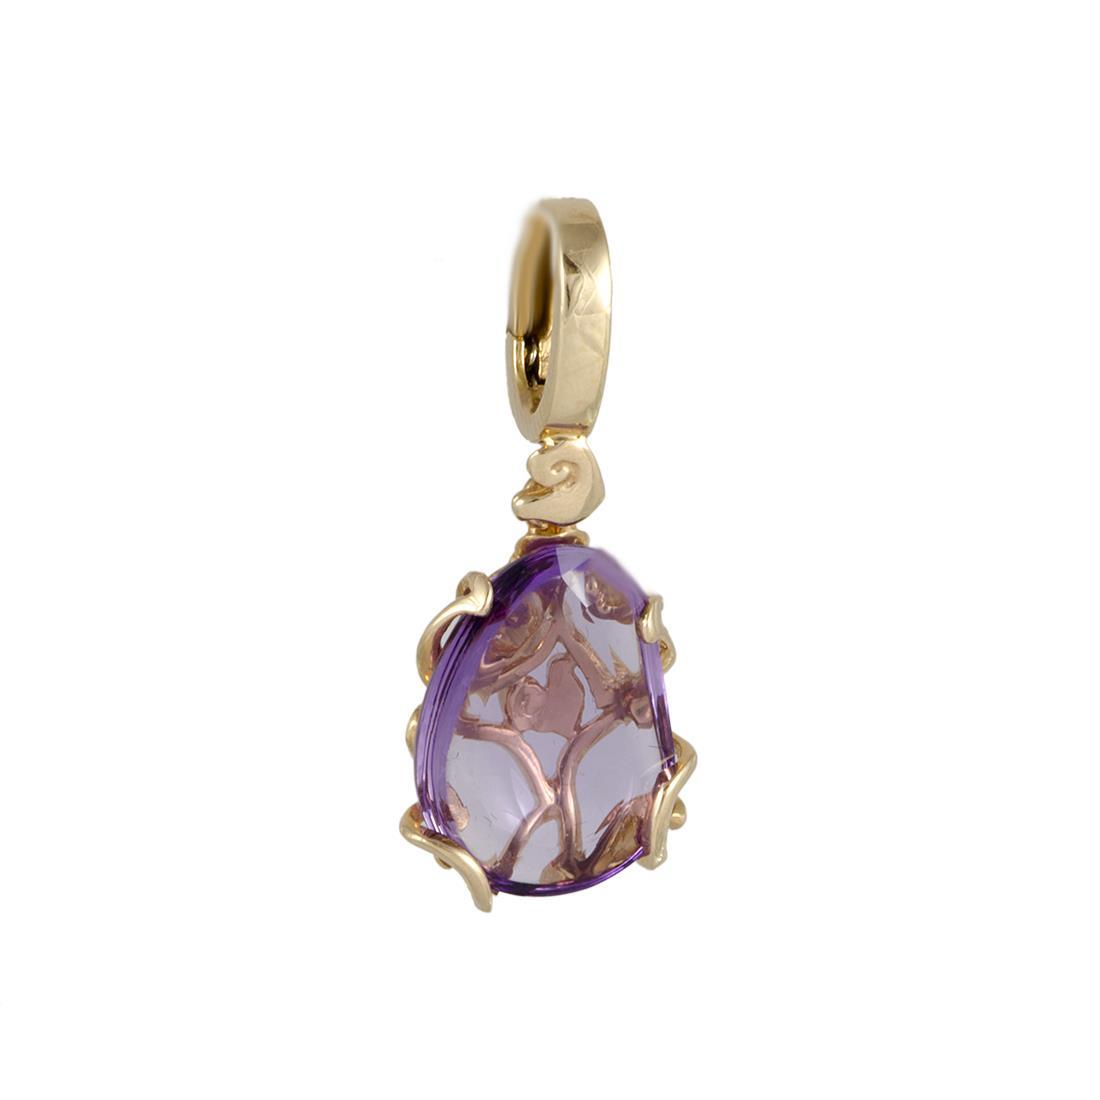 Chantecler red gold pendant with amethyst cts 0,84 - CHANTECLER